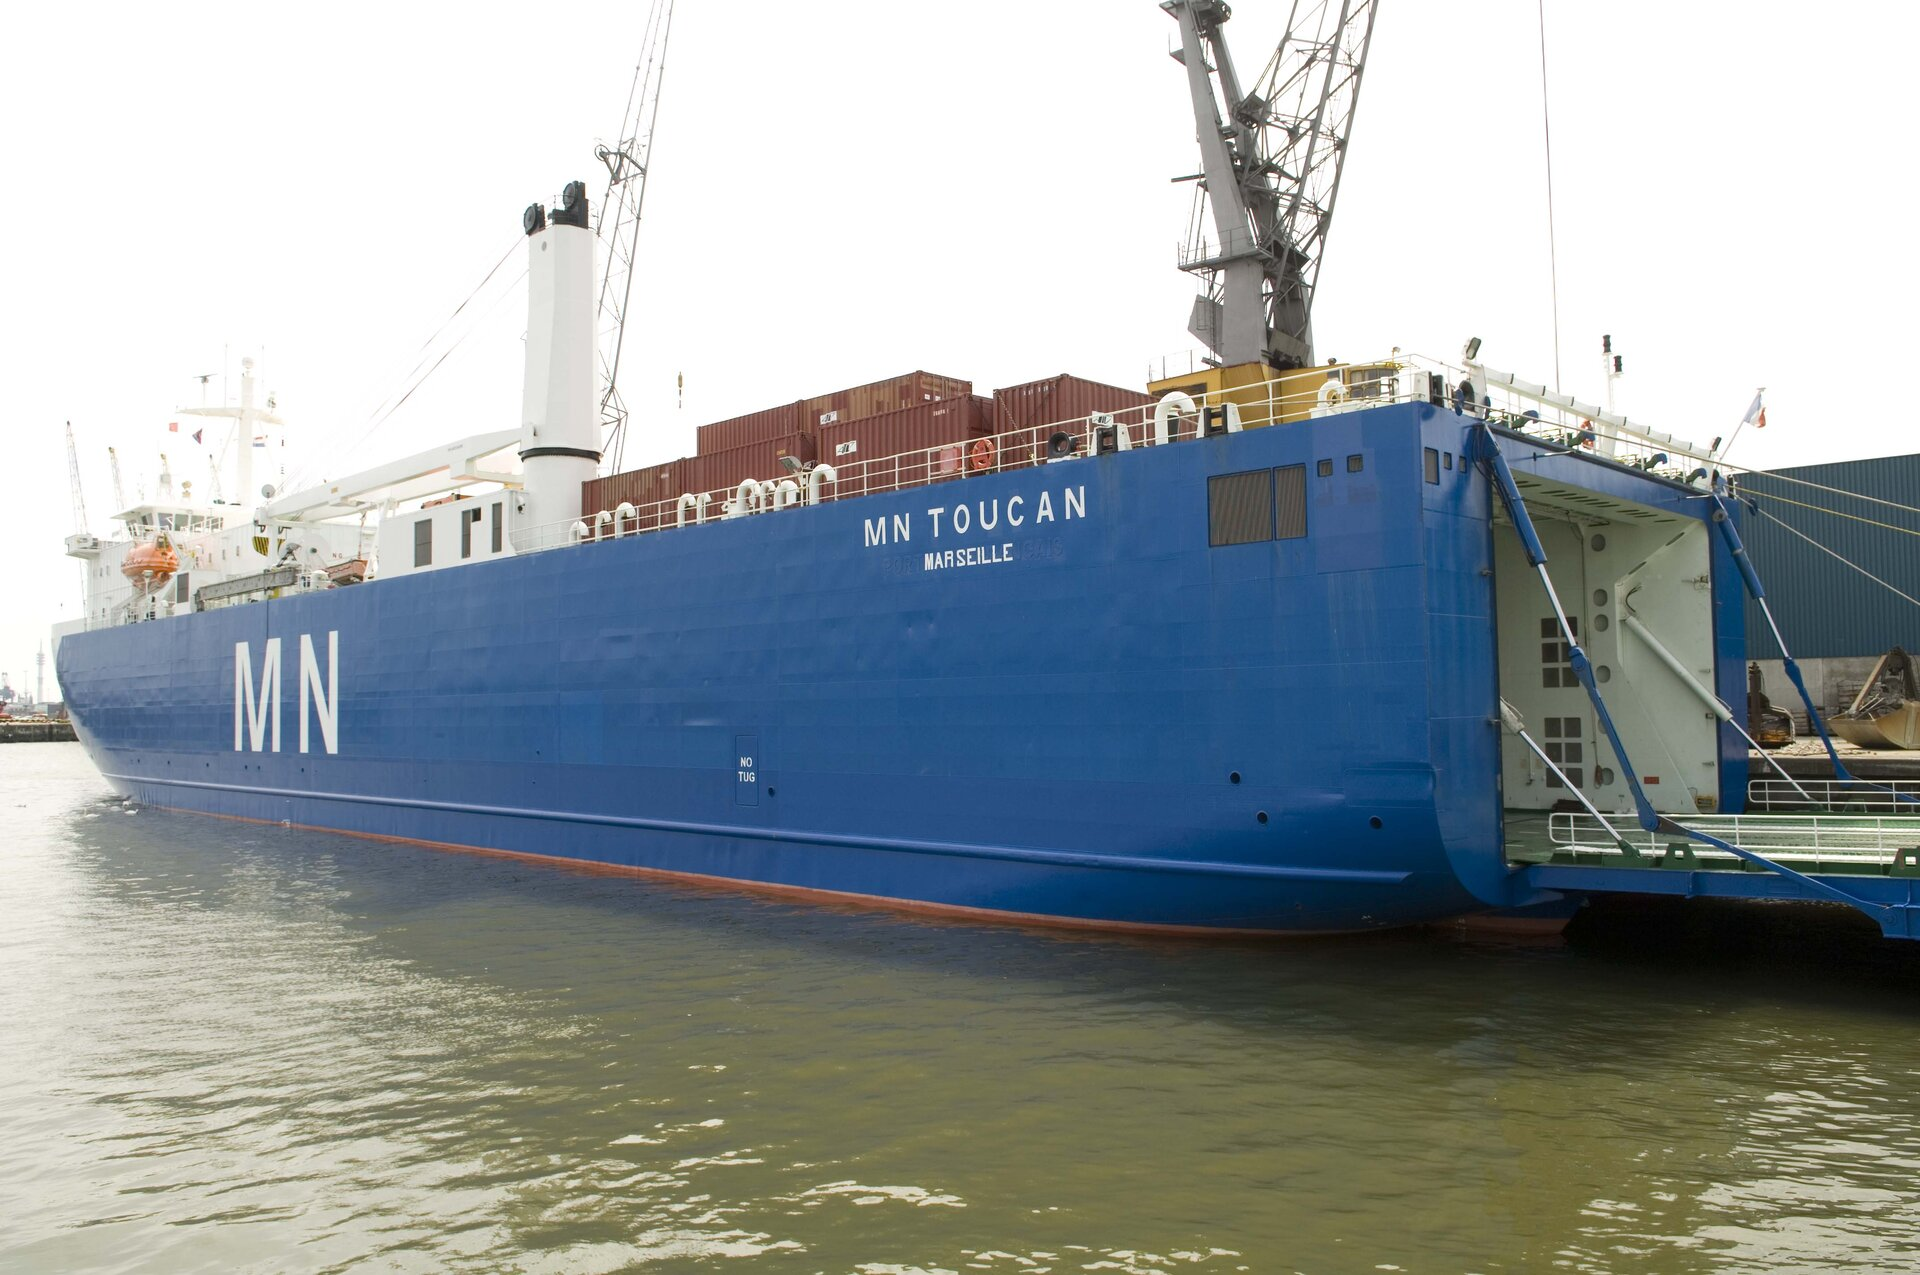 French cargo ship MN Toucan set sail for Kourou at around 15:30 CEST on Tuesday 17 July 2007